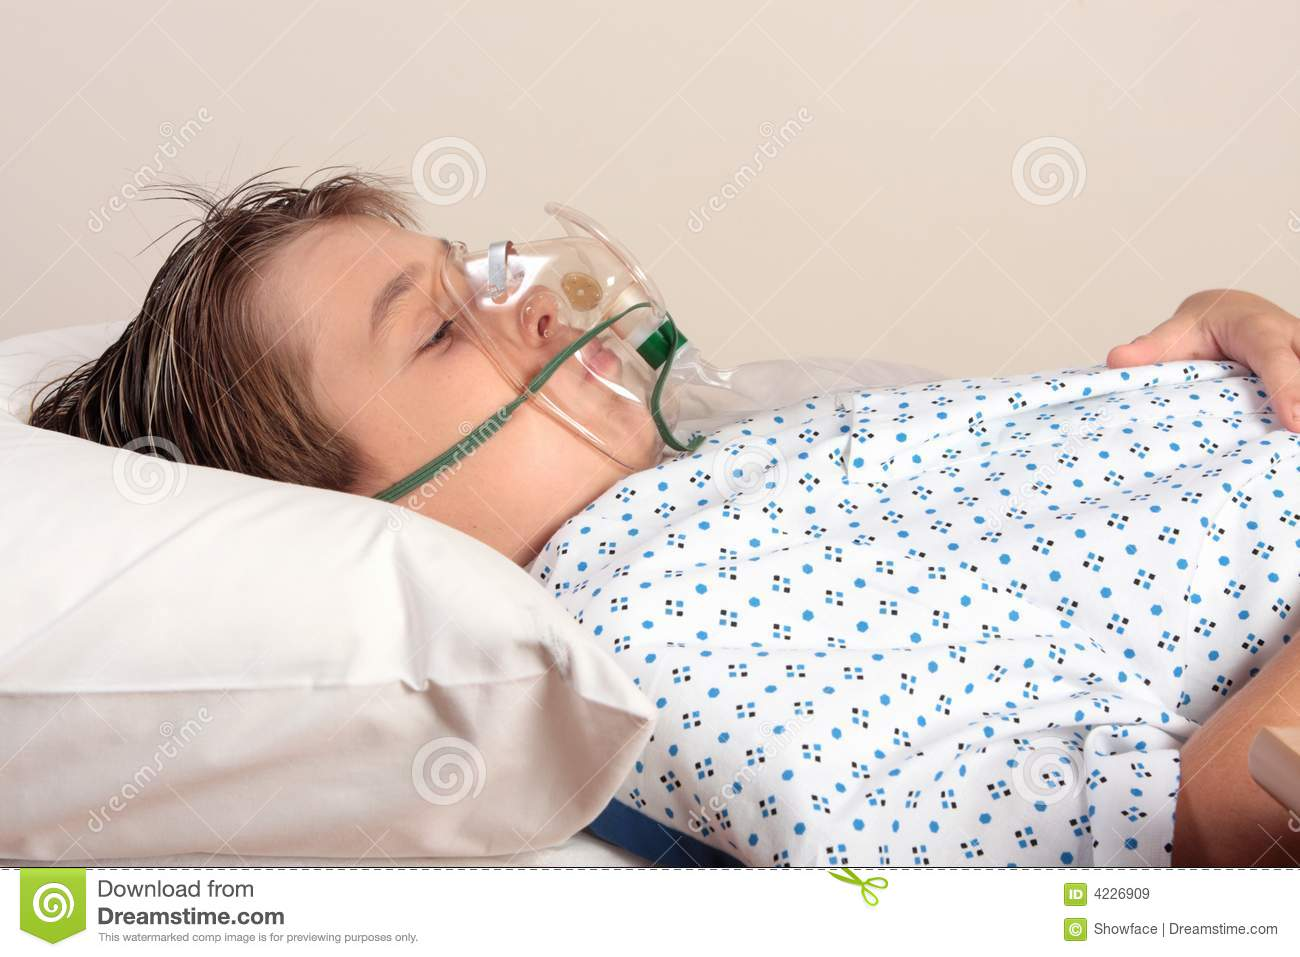 Unwell child with oxygen mask